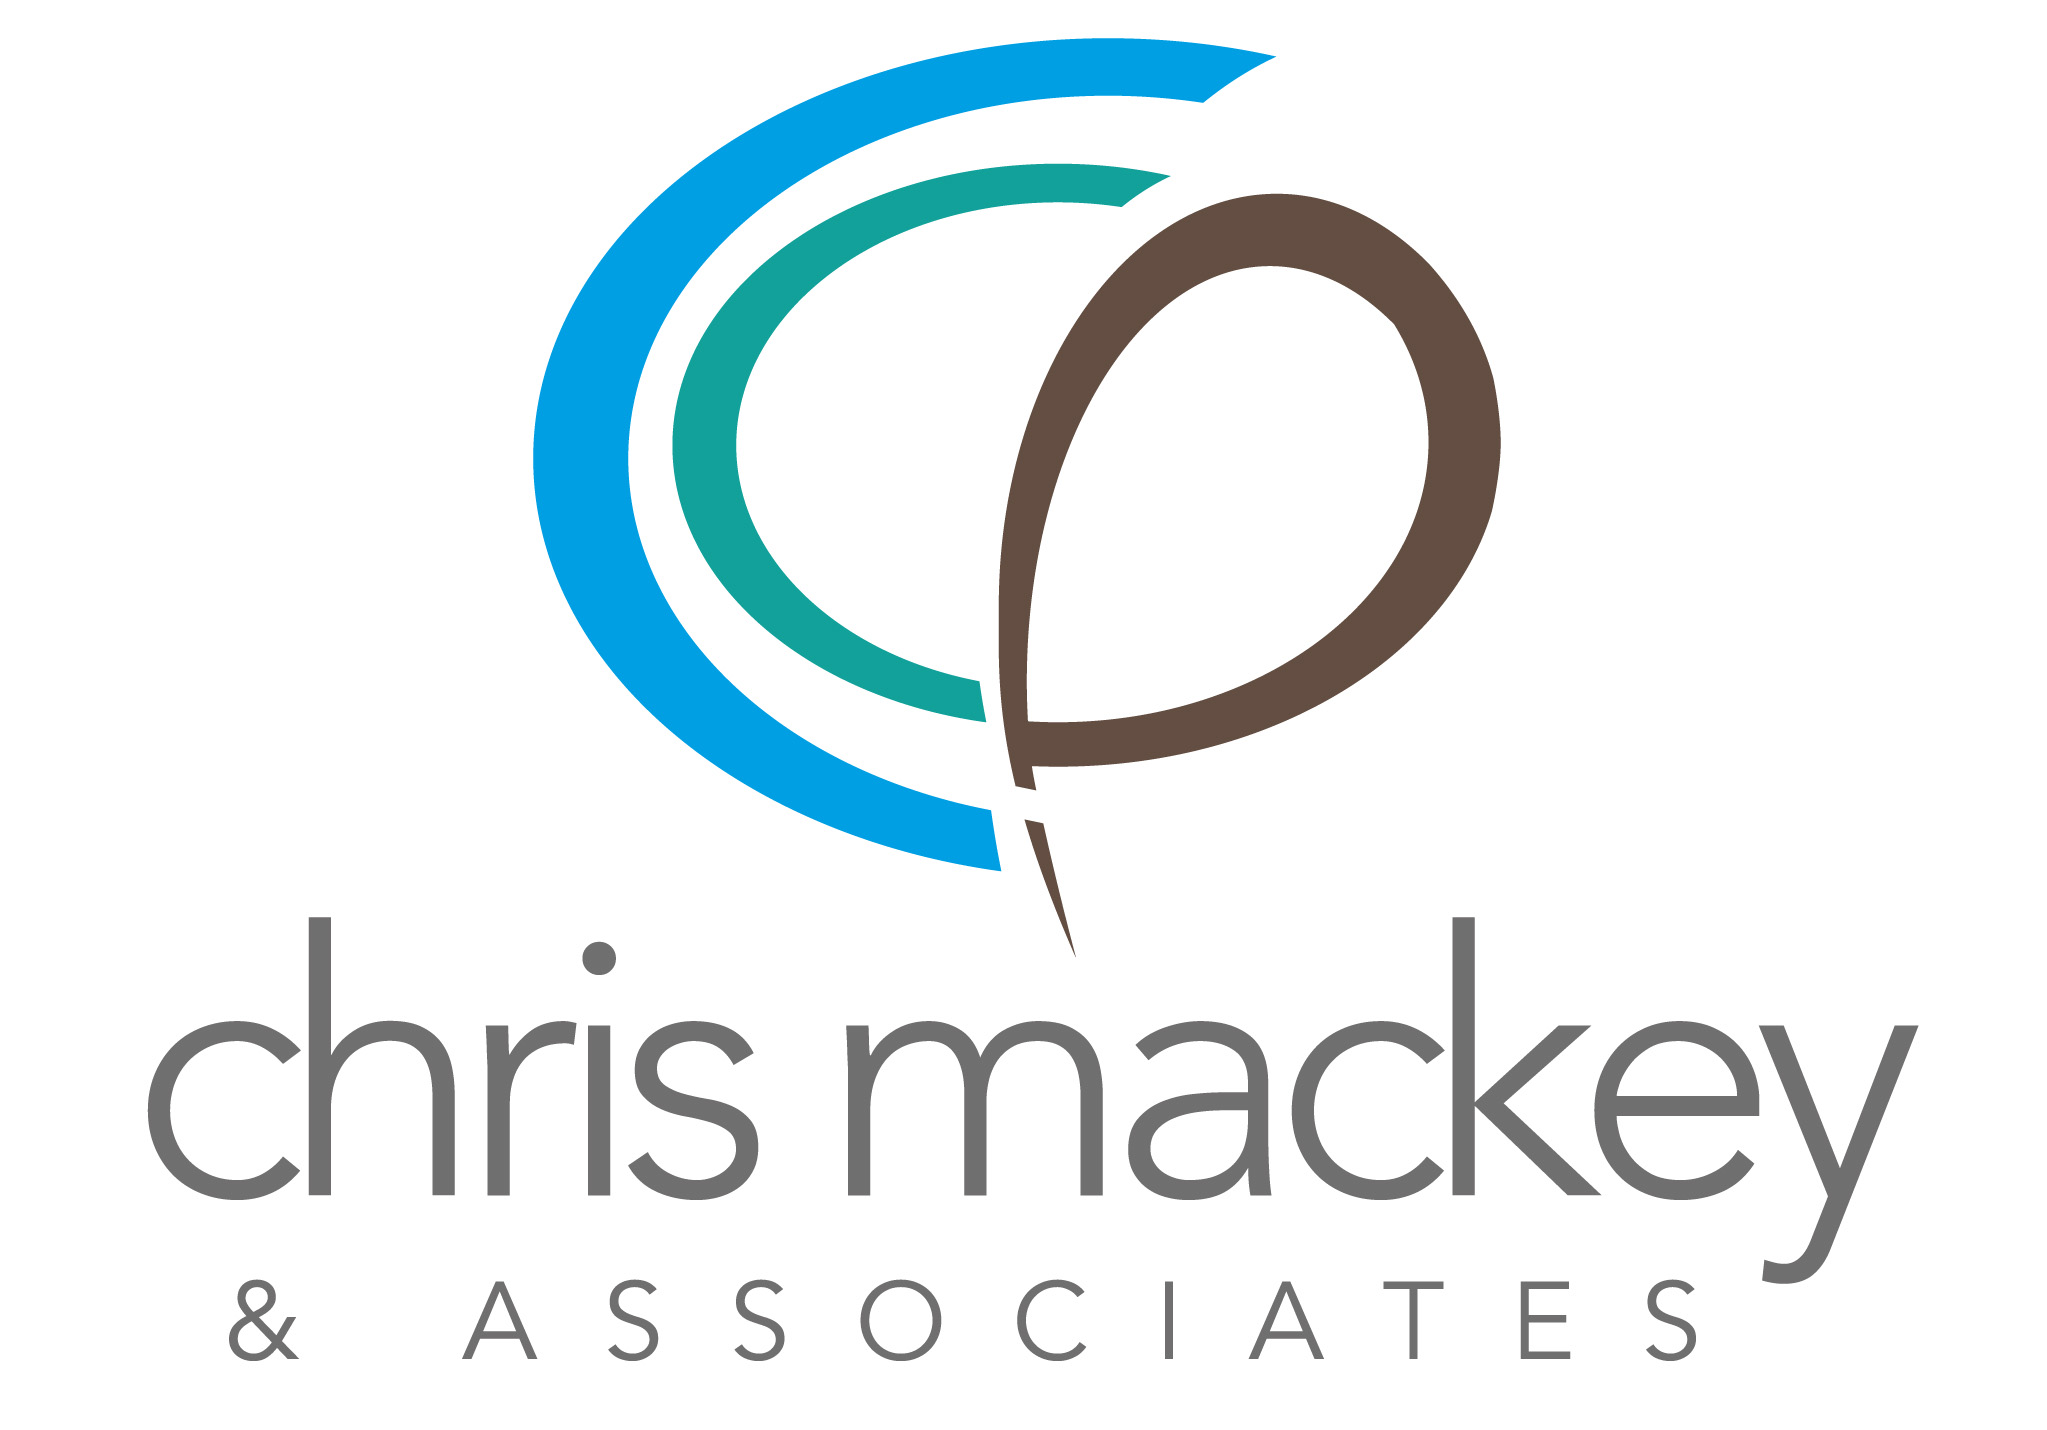 Chris Mackey and Associates logo